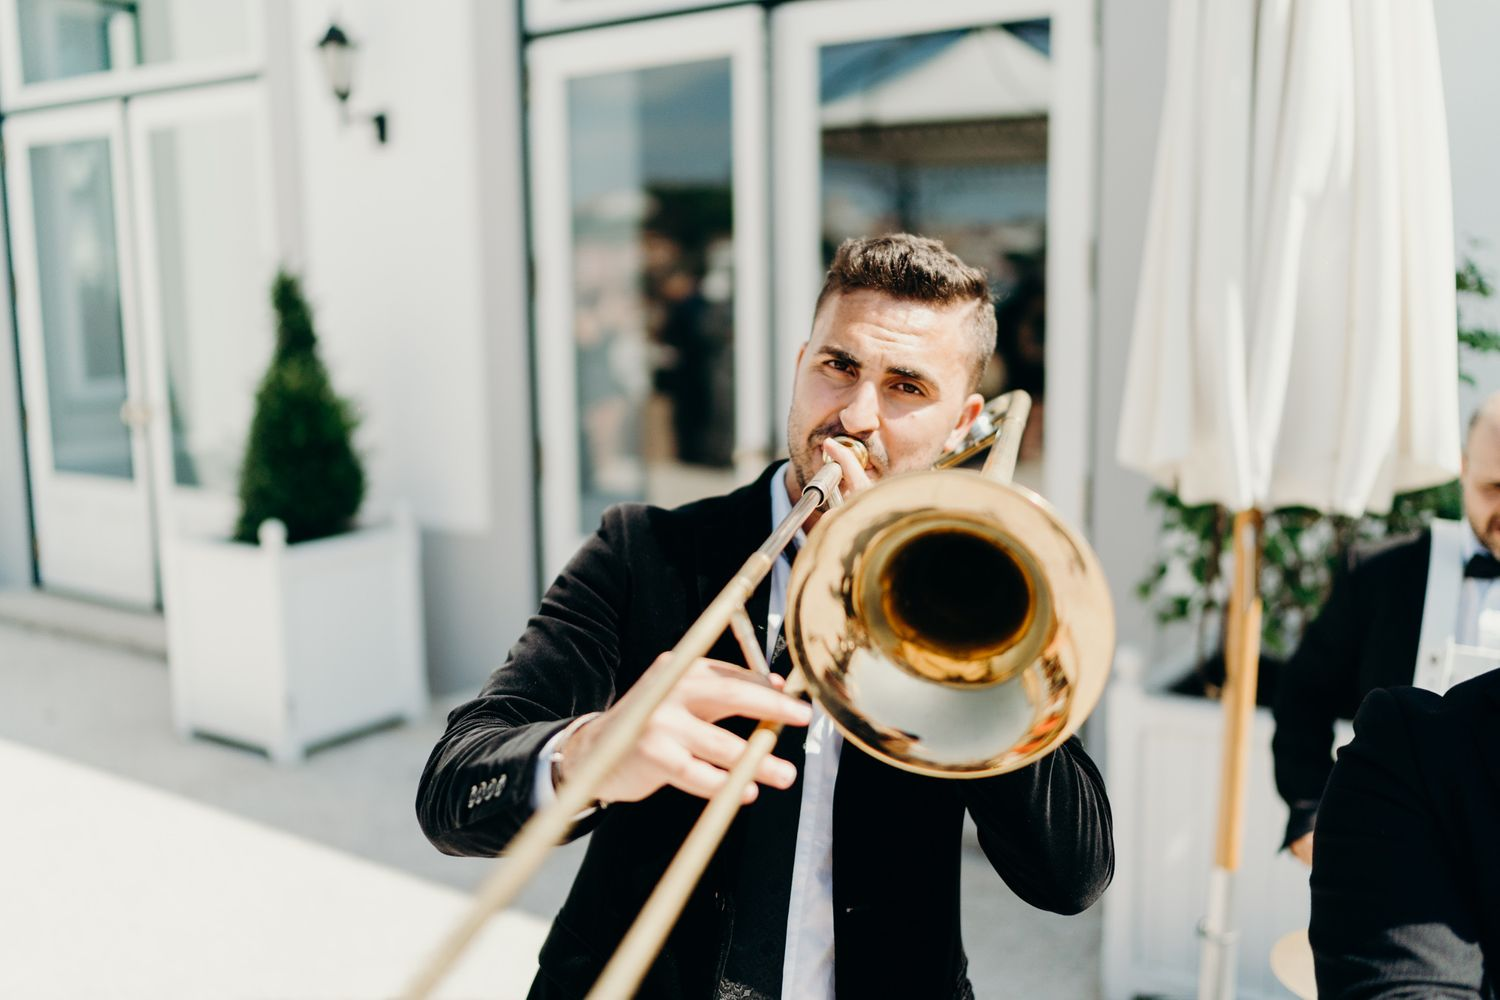 THE YEATMAN HOTEl funk you brass band WEDDING PHOTOGRAPHY